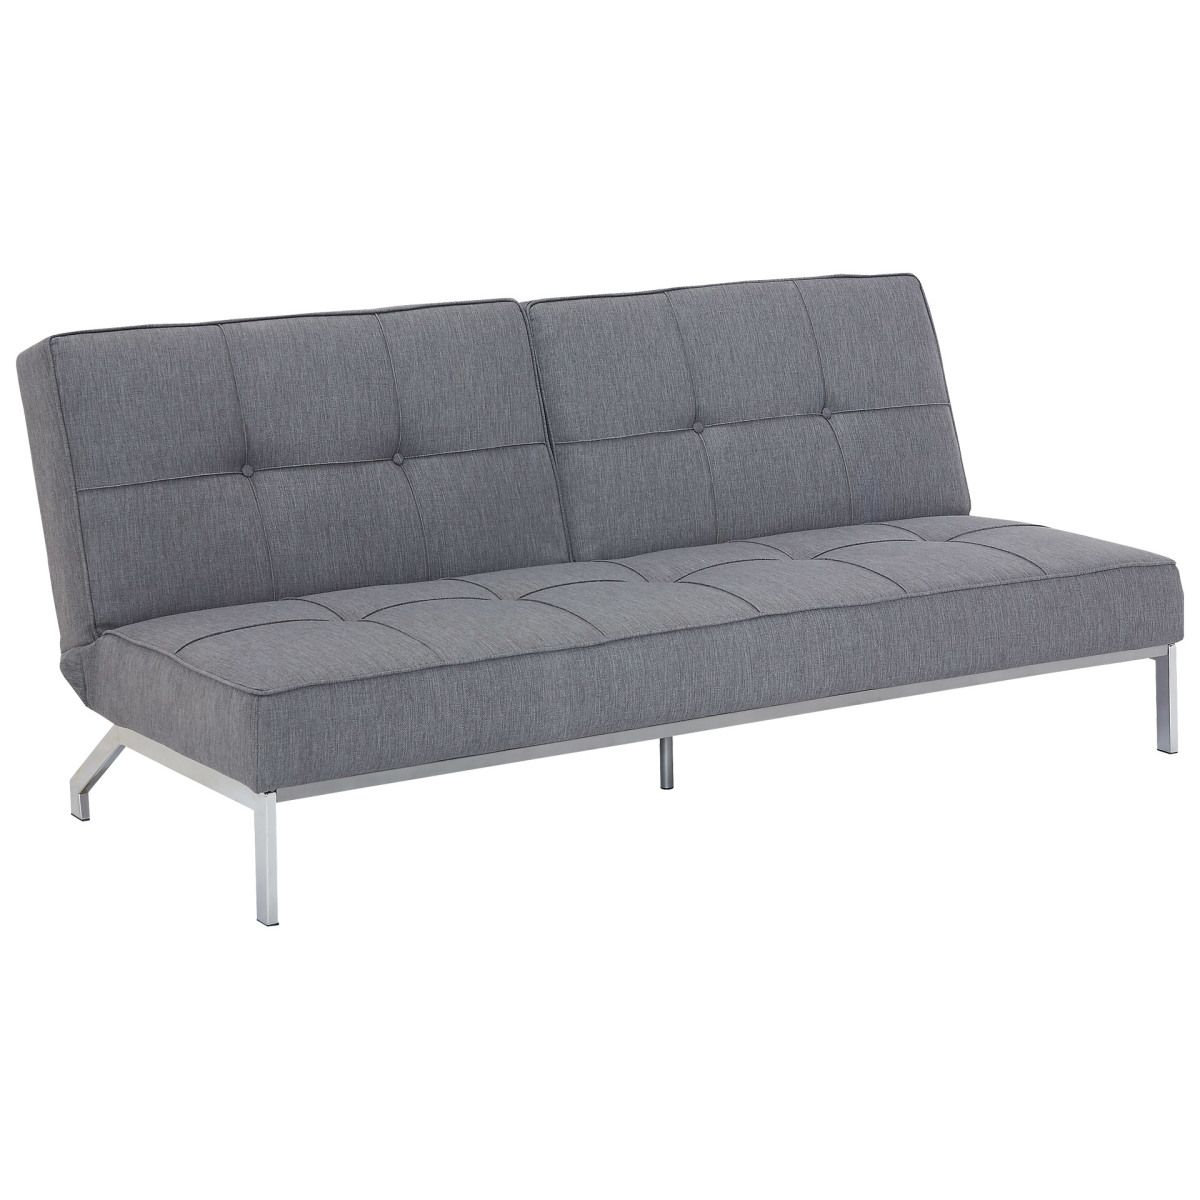 Schlafsofa Online Kaufen Pin By Ladendirekt On Sofas Couches Sofa Couch Furniture